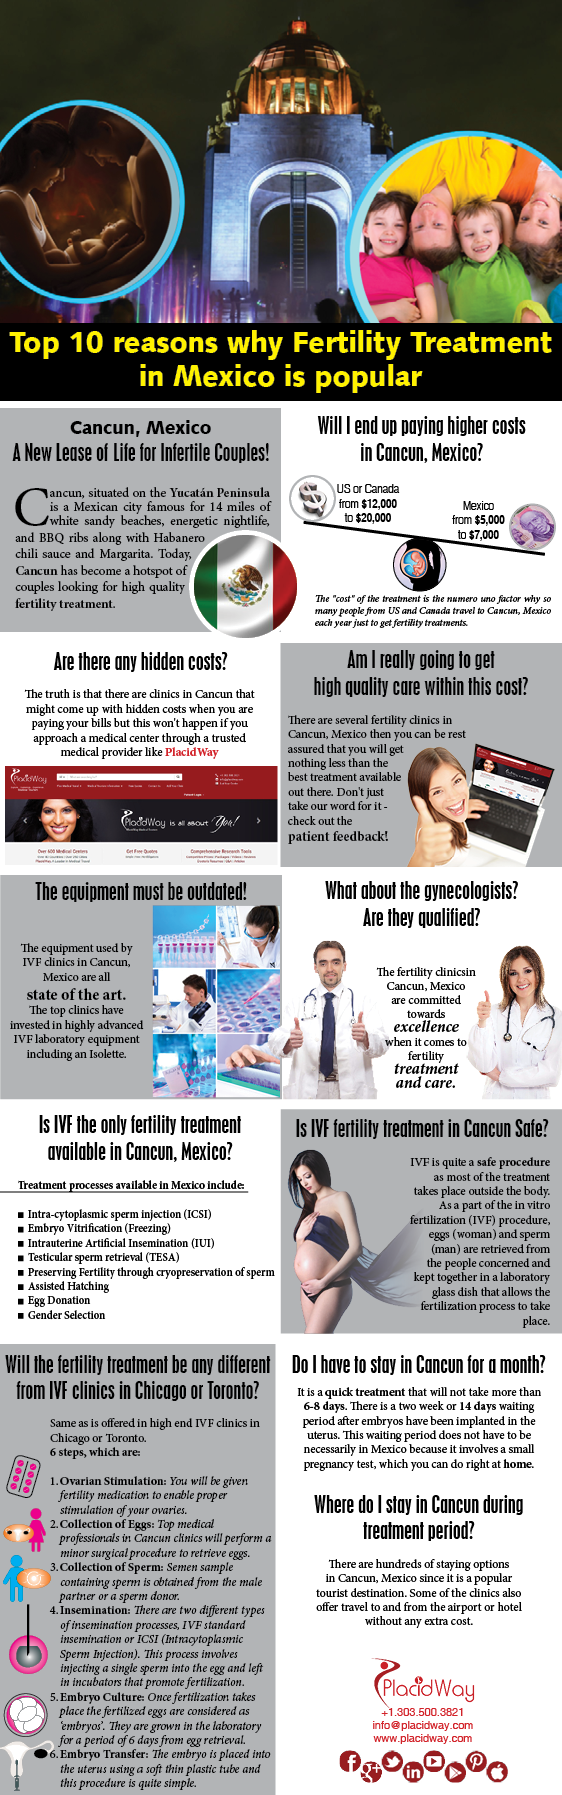 Infographics: Top 10 reasons why fertility treatment in Mexico